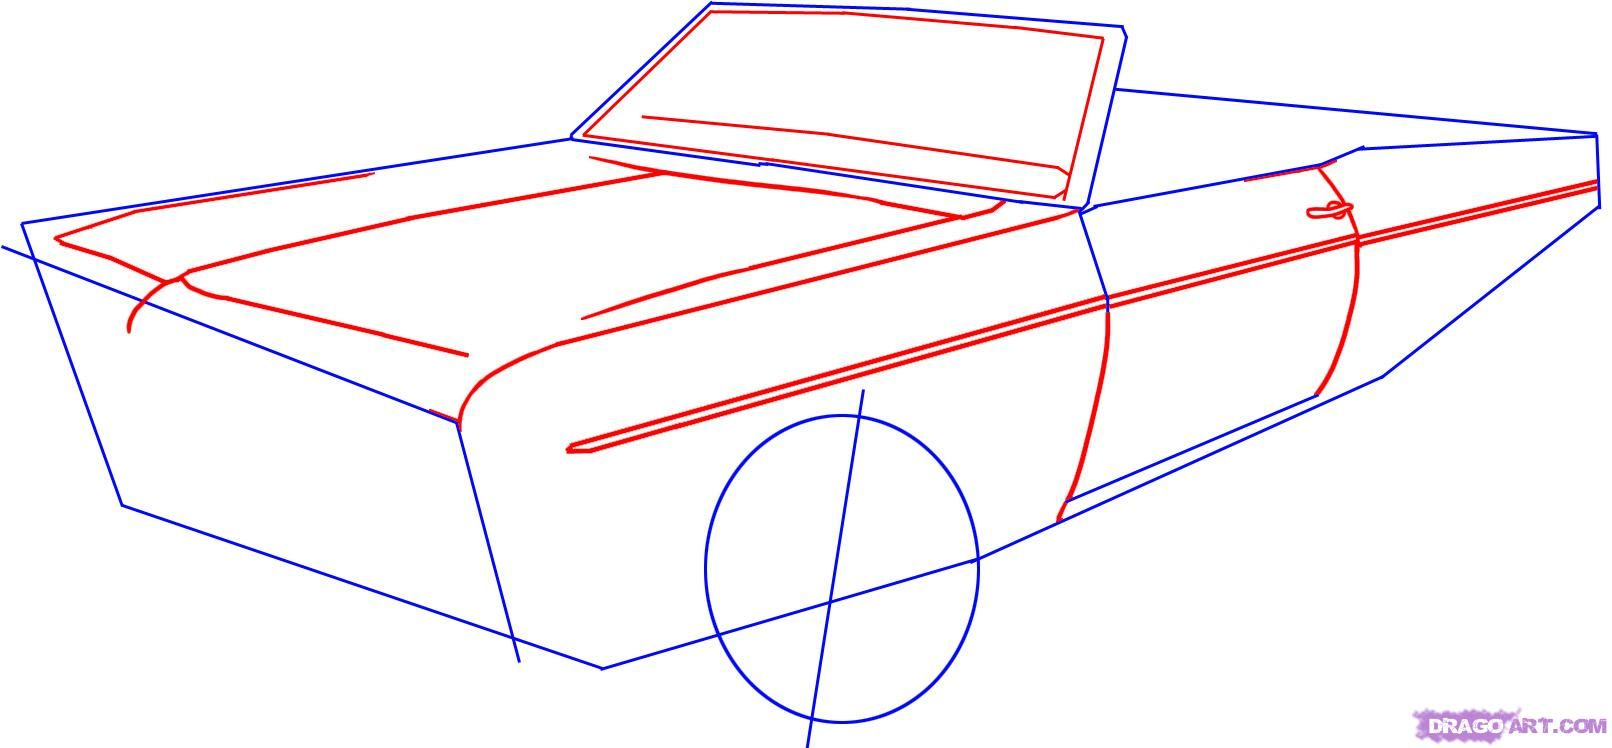 How To Draw A Lowrider Car Step 2